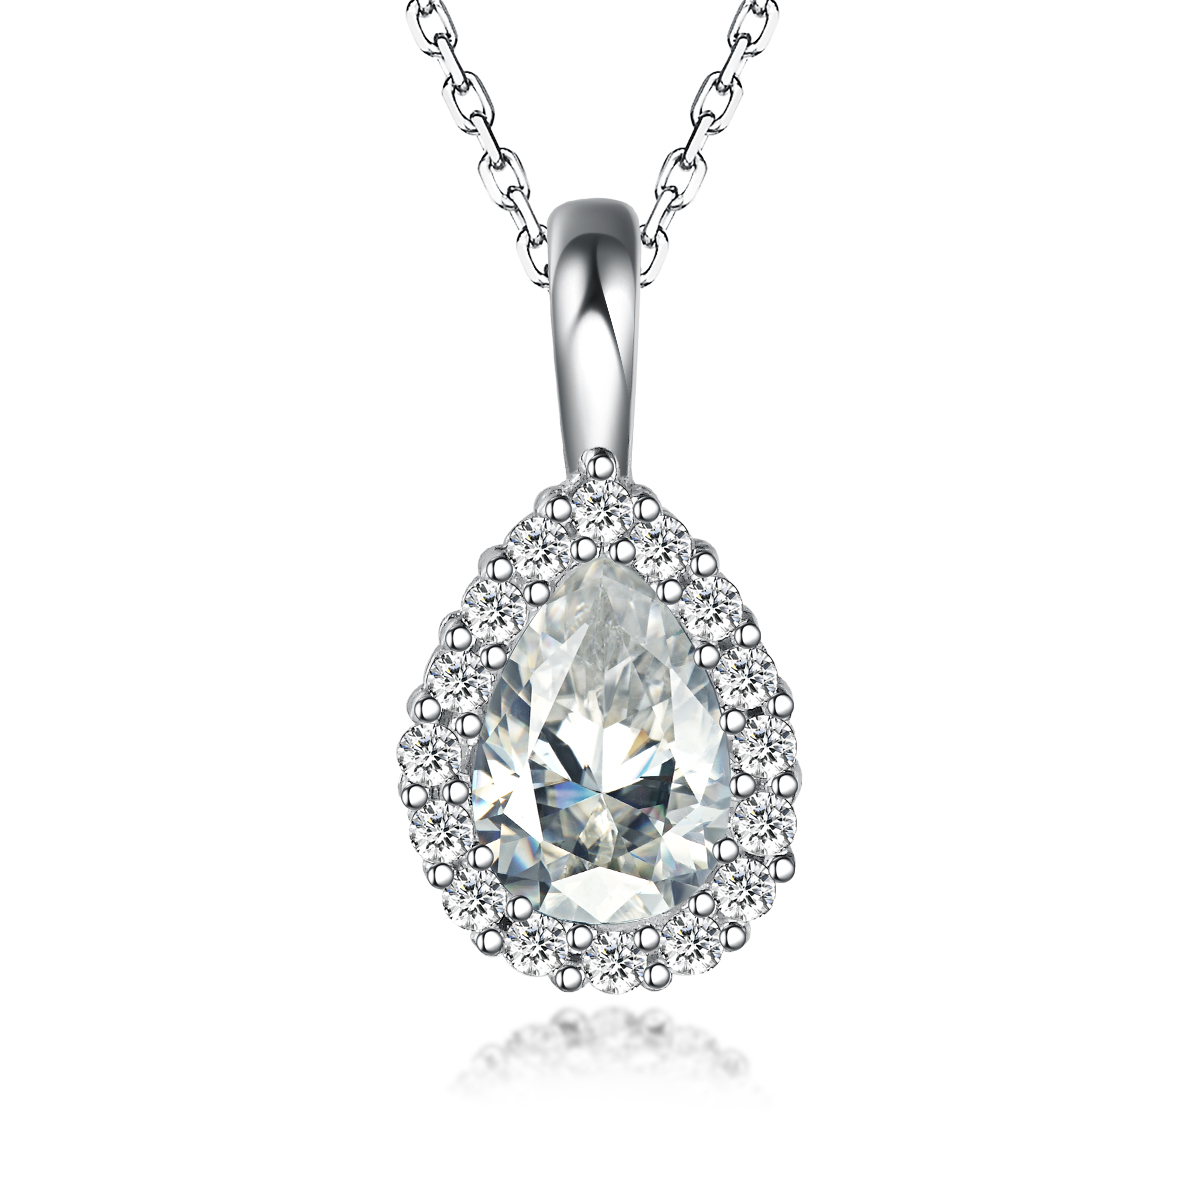 Wholesales Diamond Sterling Silver Heart Pendant Necklace